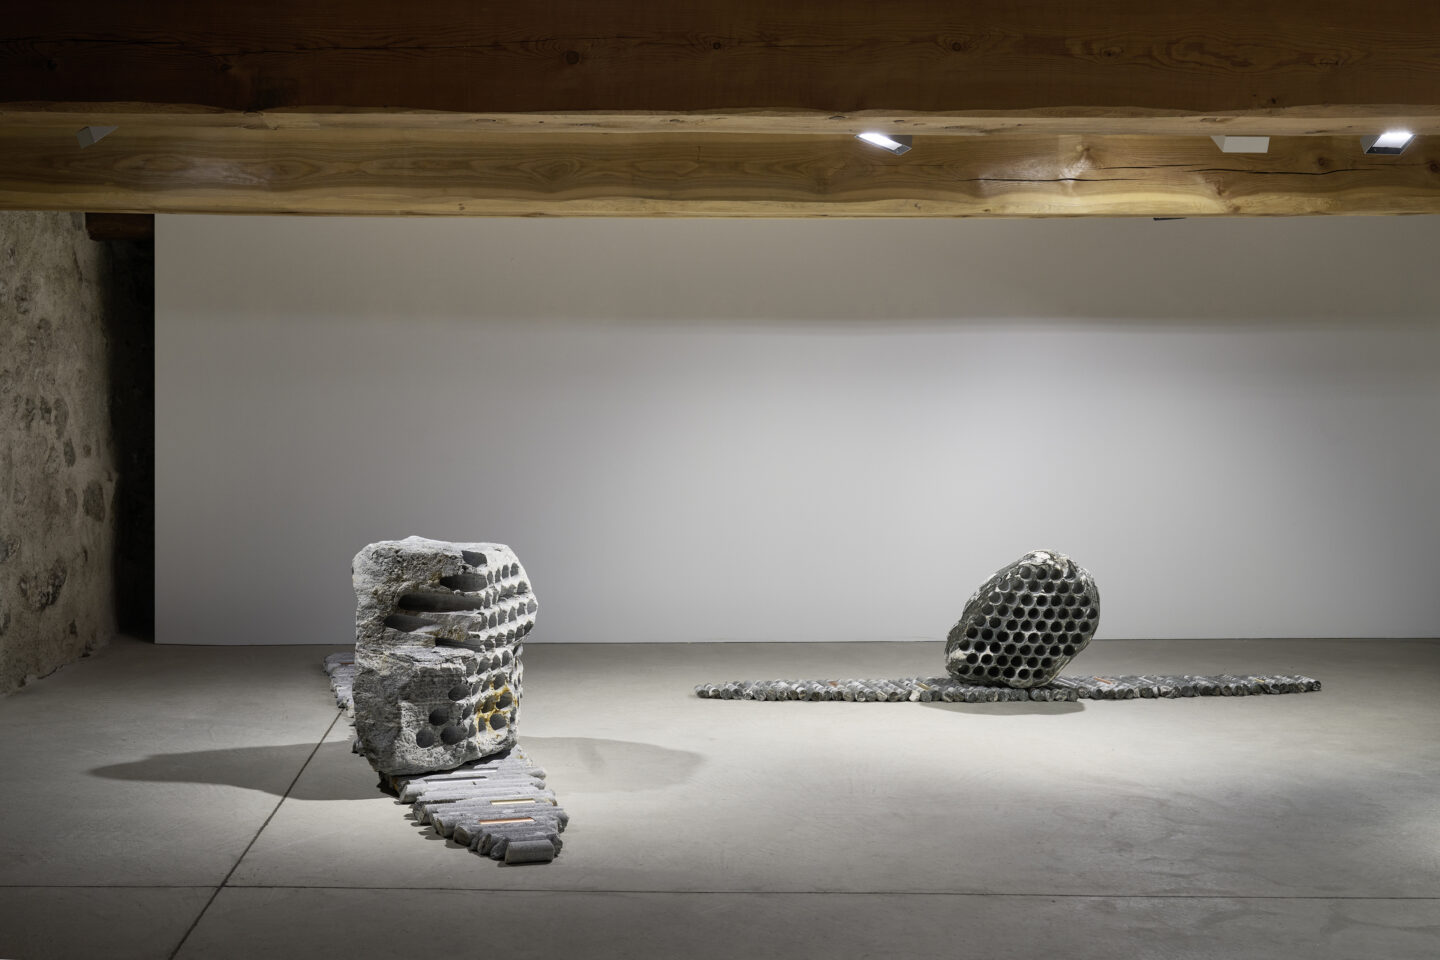 Exhibition View Groupshow «Absolutely Tschudi; view on Julian Charrière, Not All Who Wander Are Lost, 2019» at Galerie Tschudi, Zuoz, 2019 / Photo: Ralph Feiner, Malans / Courtesy: the artists and Galerie Tschudi, Zuoz